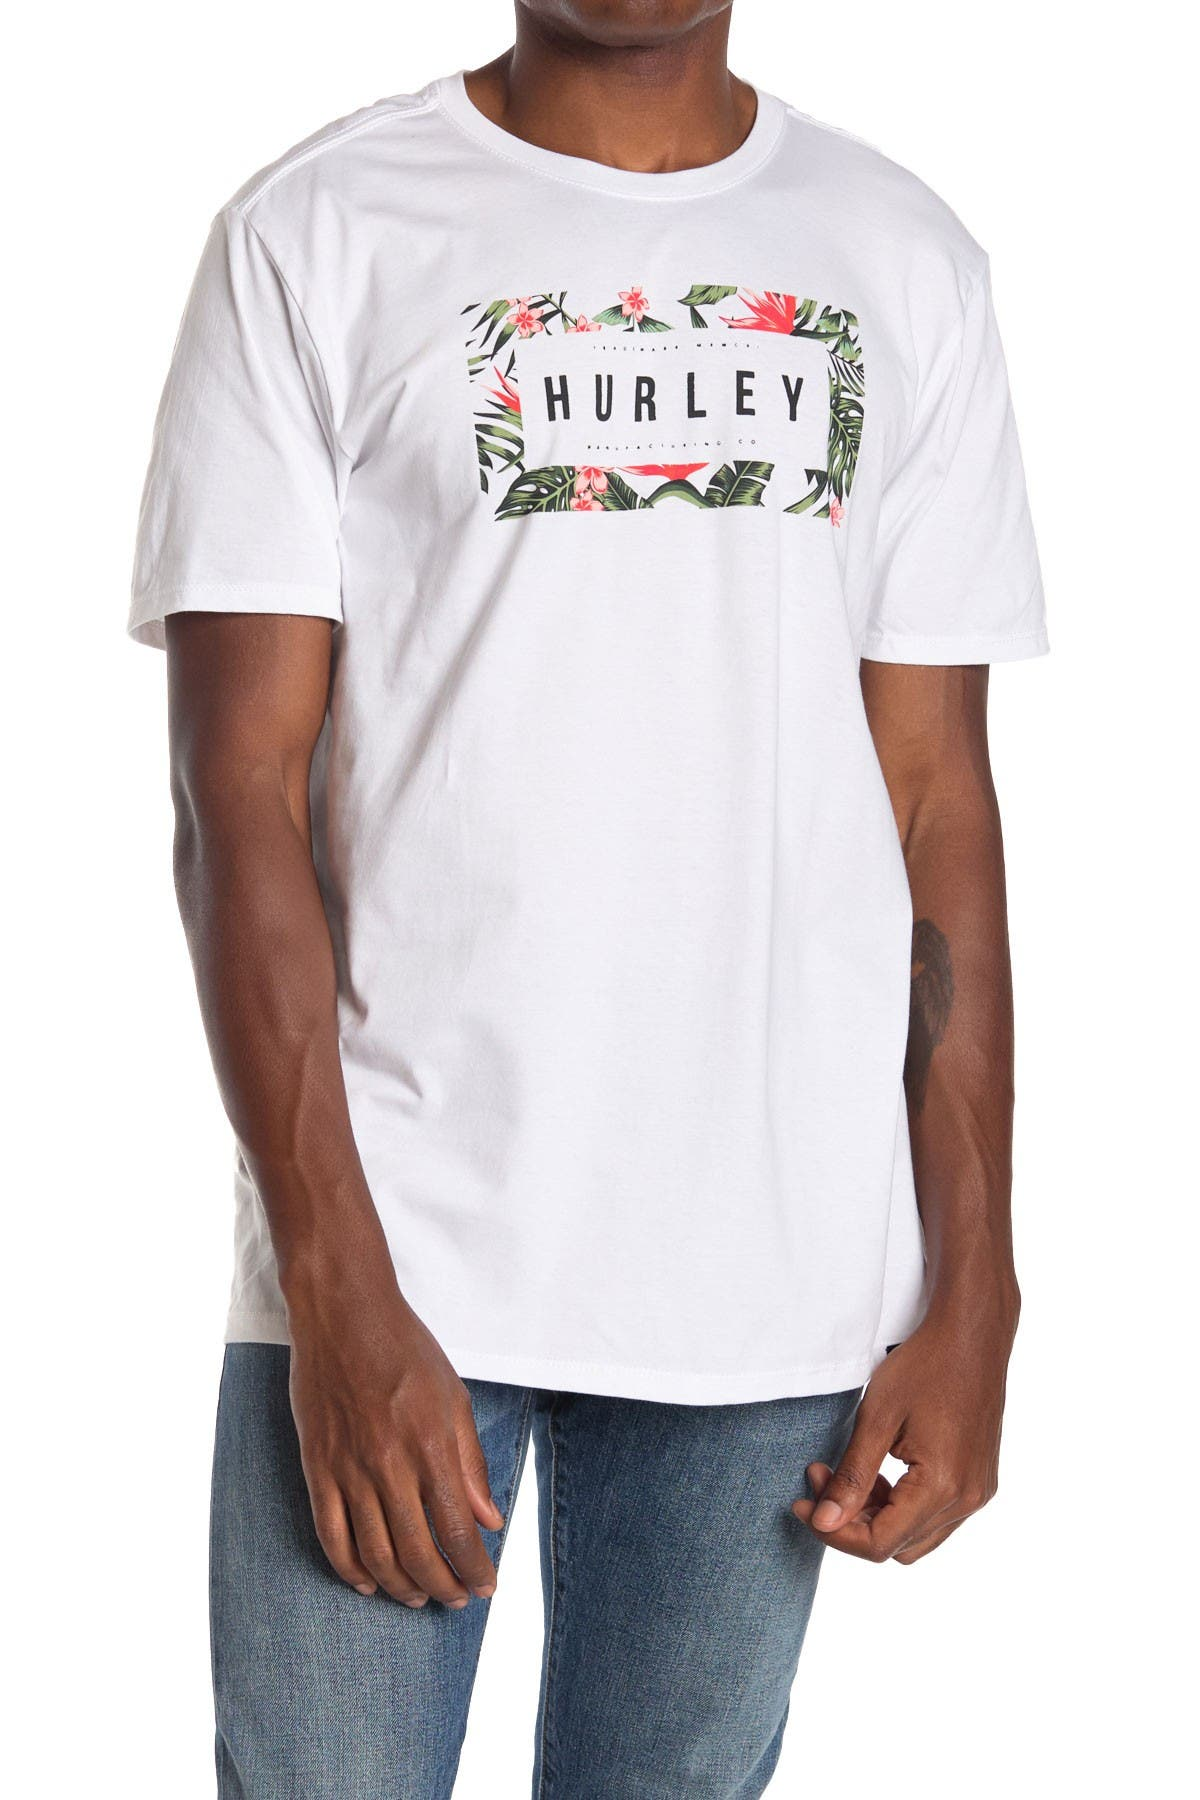 Image of Hurley Flashback Floral Short Sleeve T-Shirt